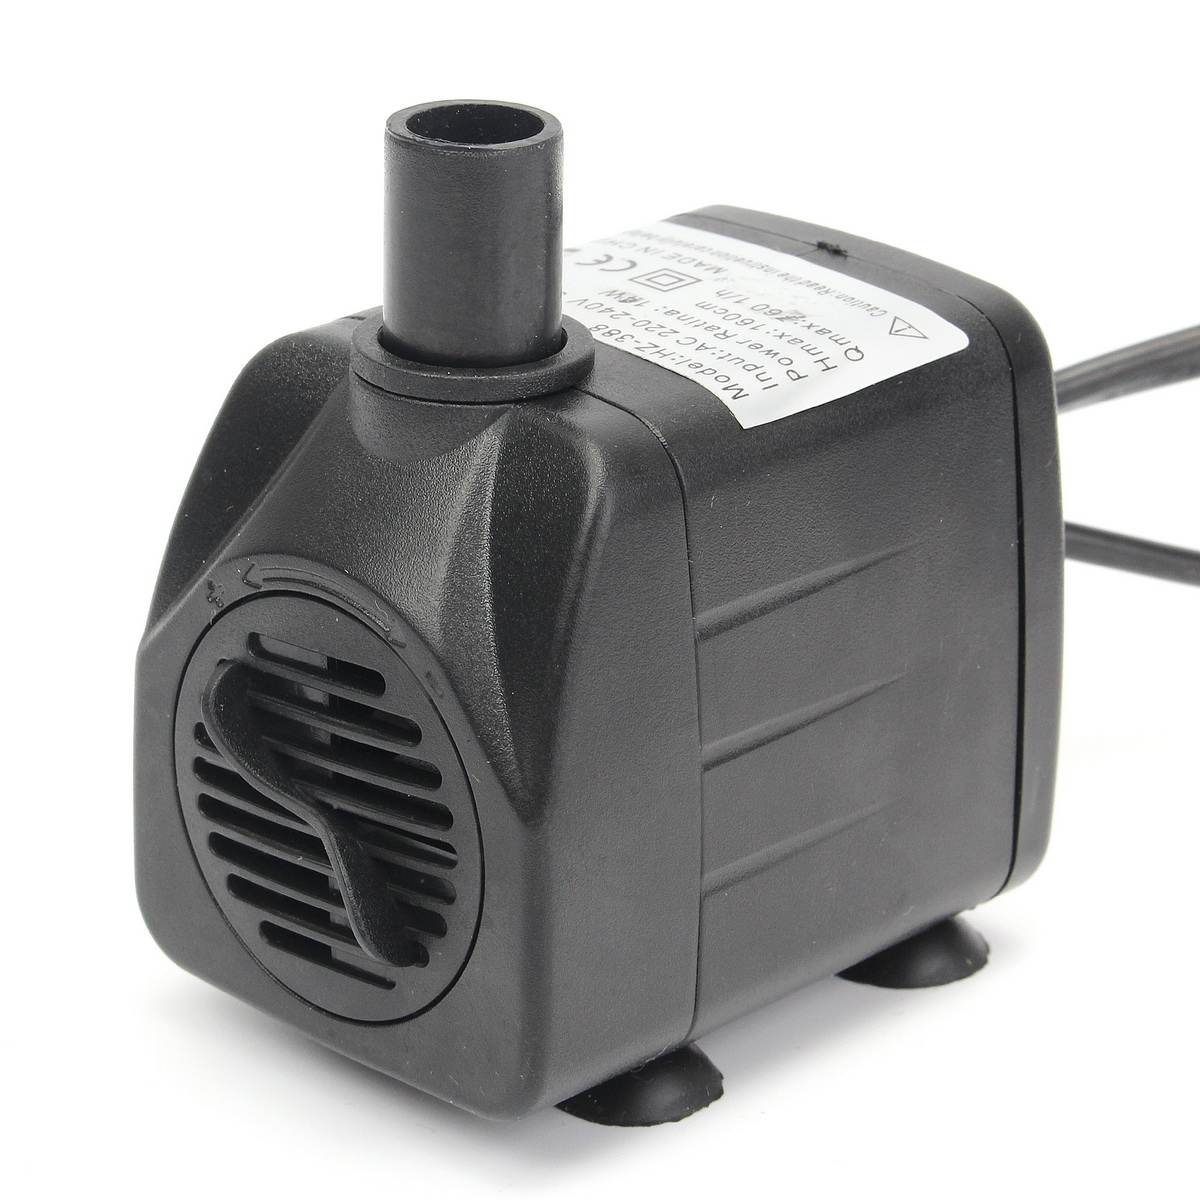 Other business farming industry 10w 220v led light Water pumps for ponds and fountains